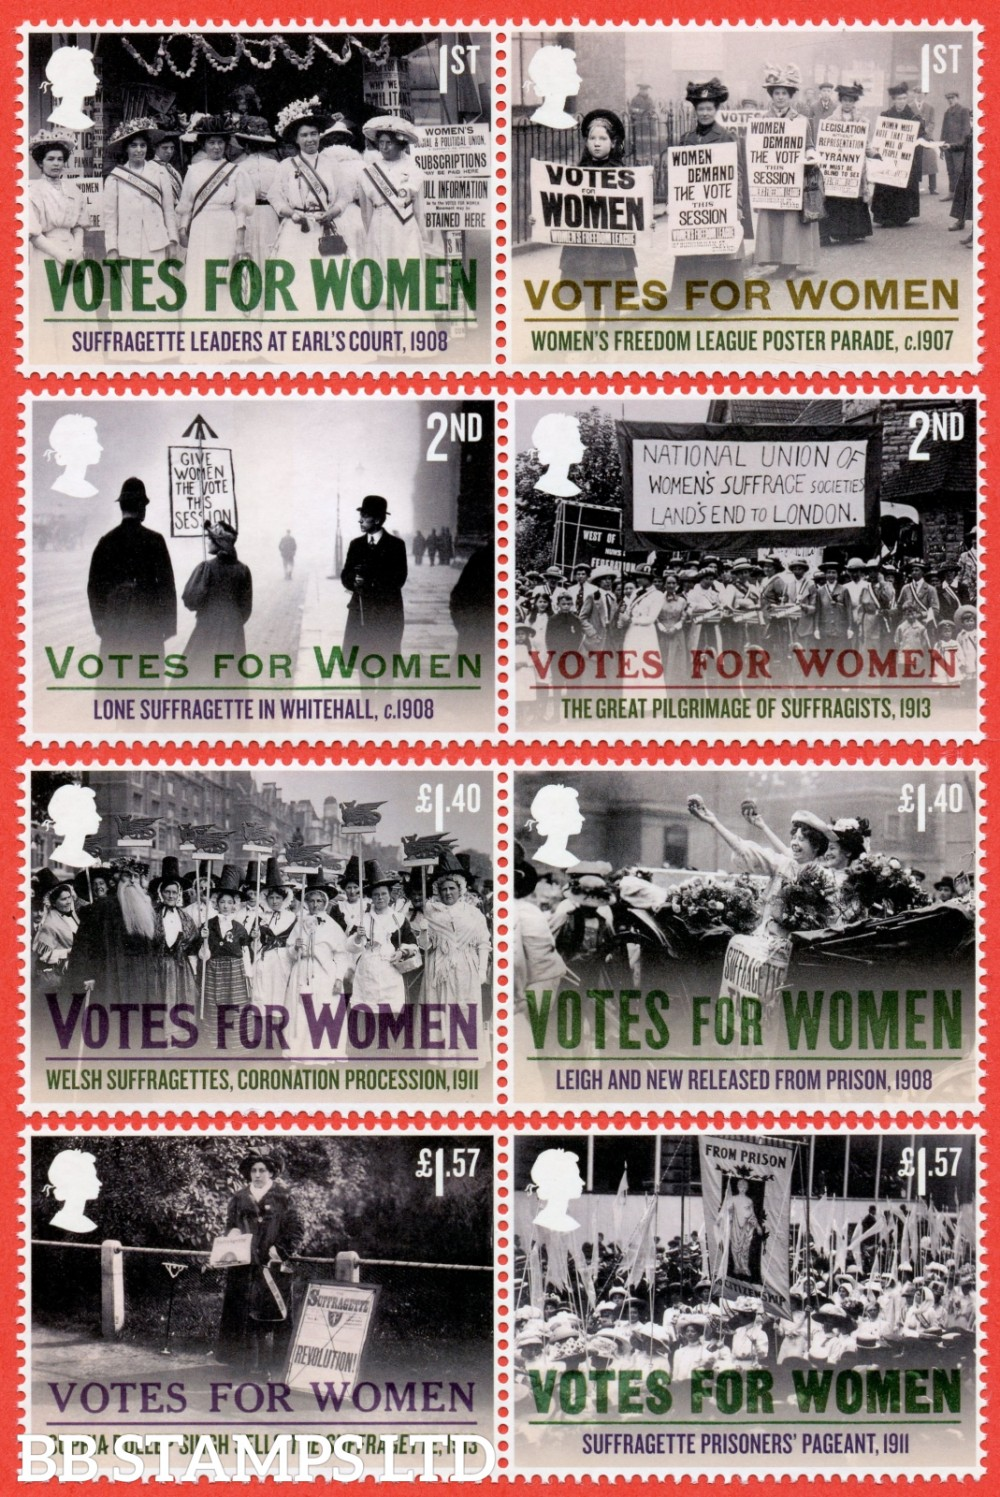 2018 Centenary 100 Years of Votes for Women